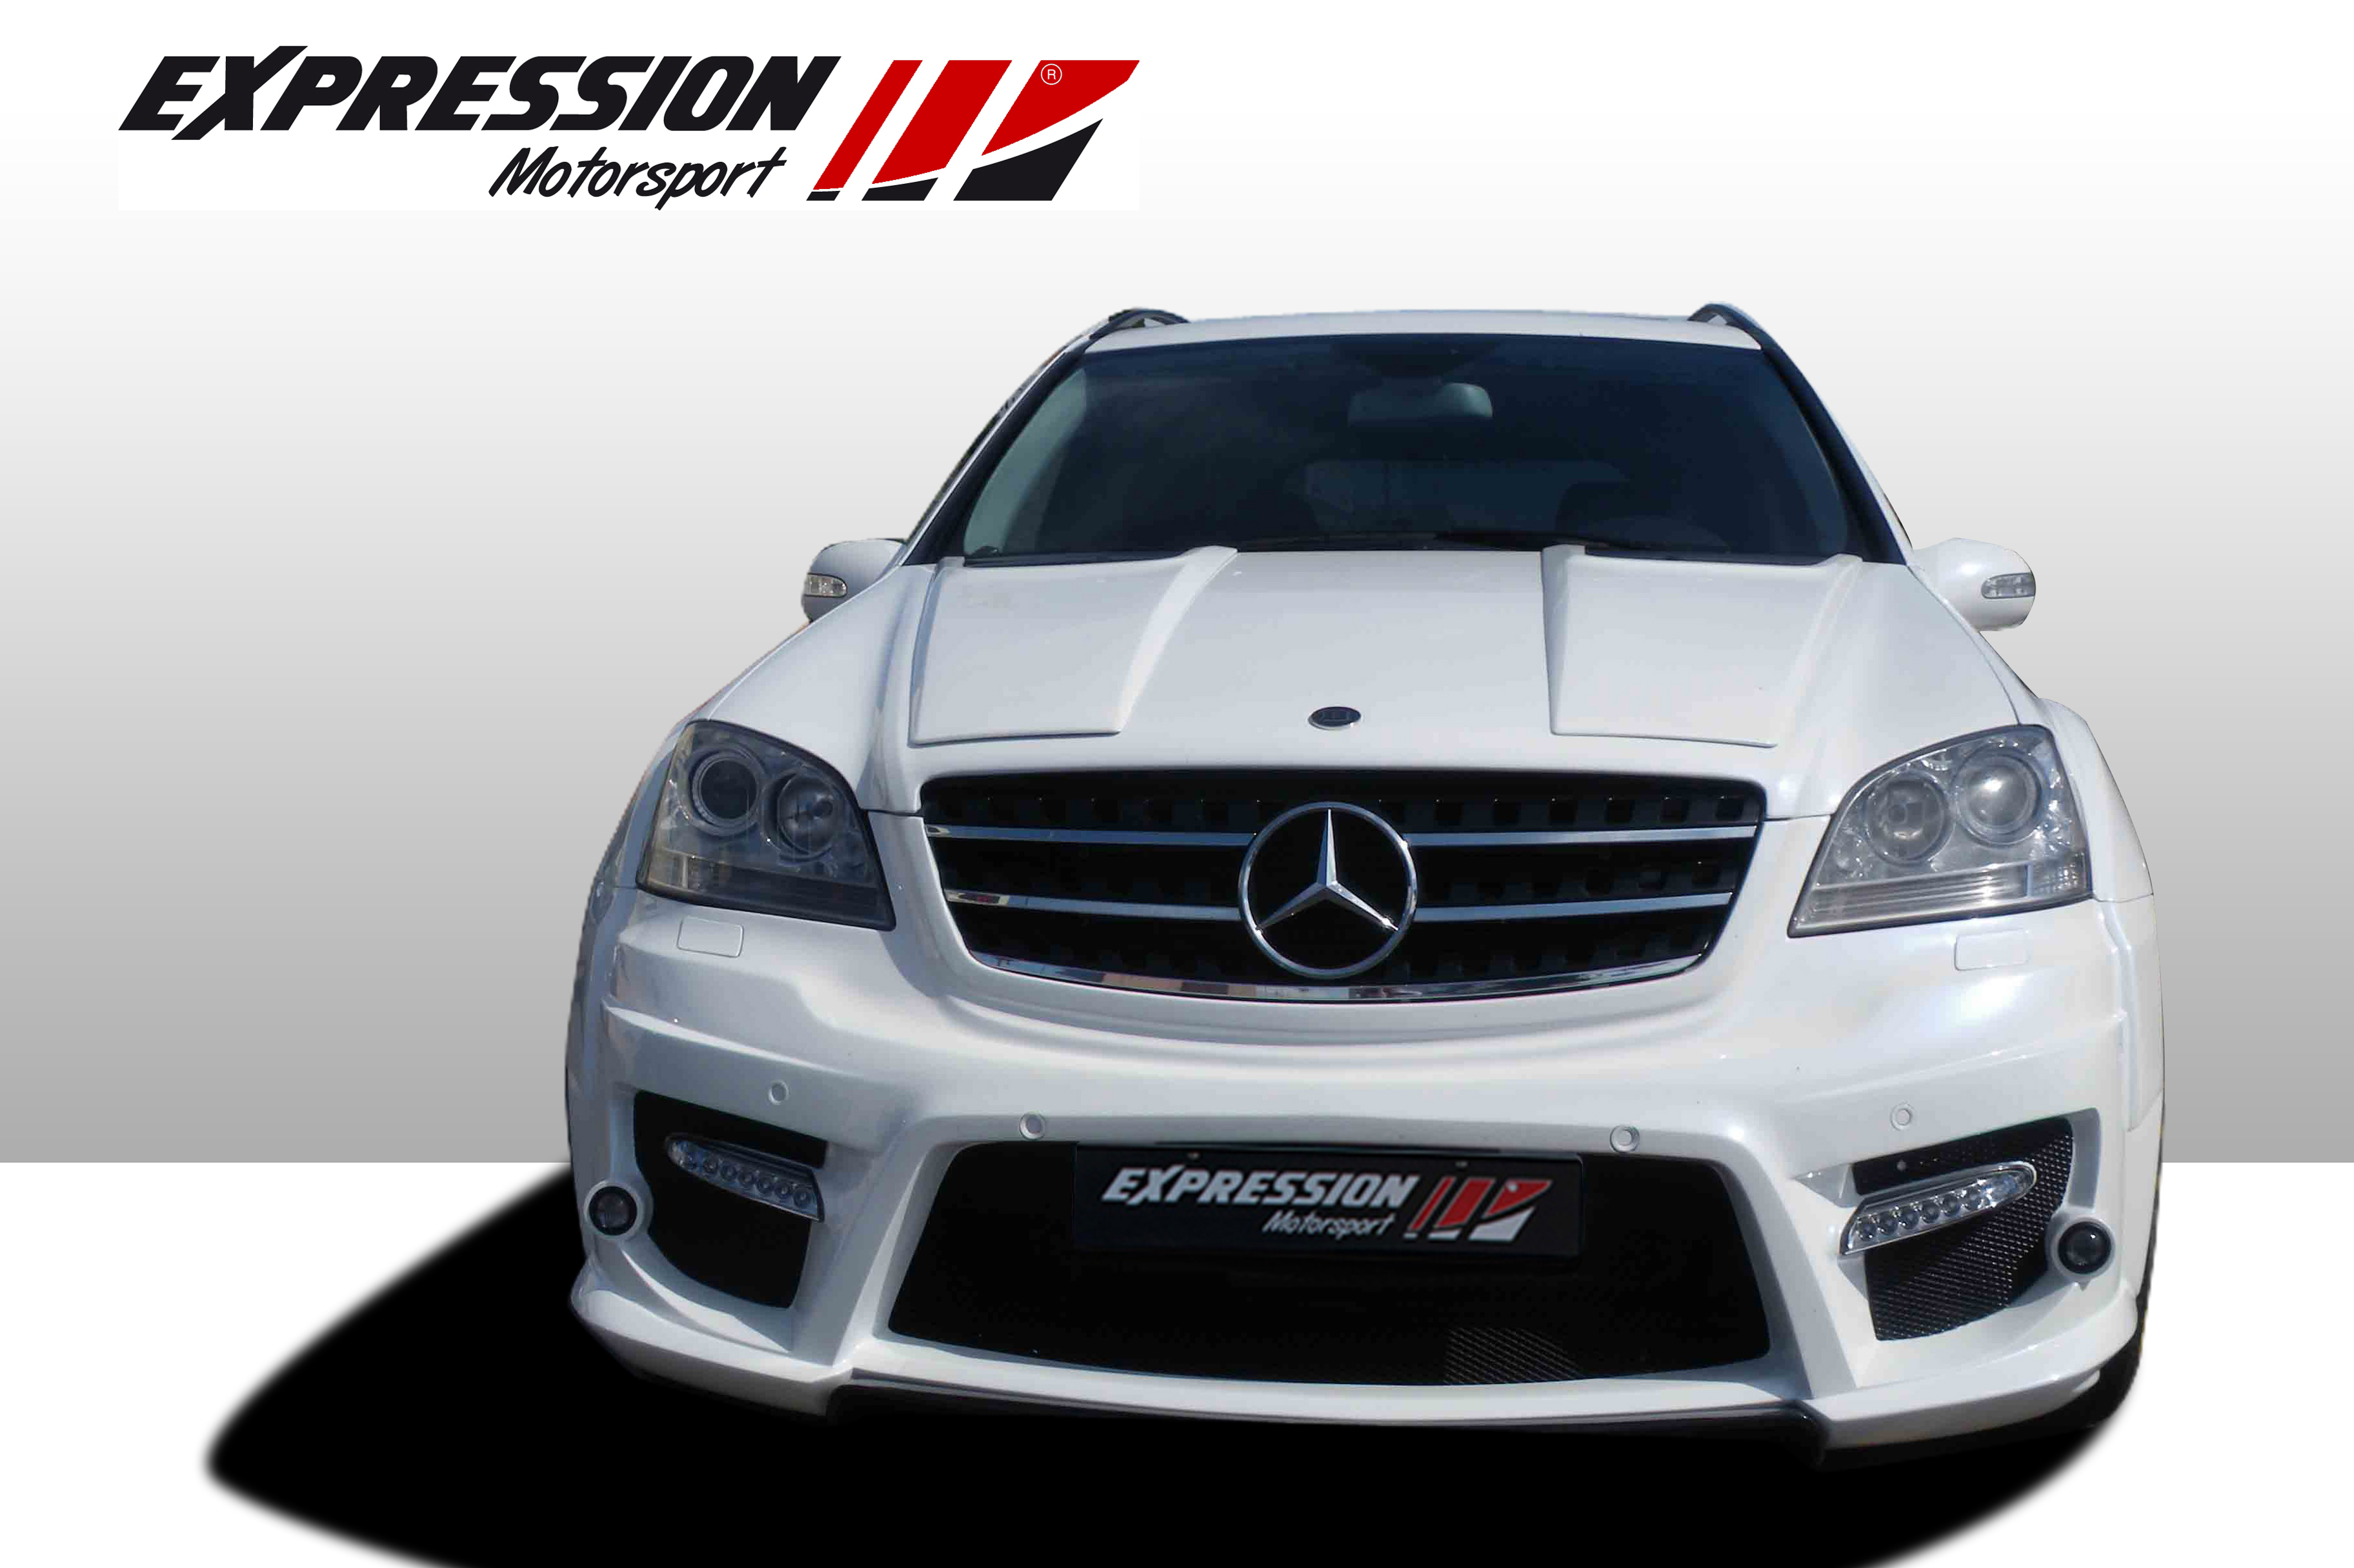 Wallpaper 7b further 42912 also N0sgt together with 32 further As 02mbc32s3. on mercedes benz amg